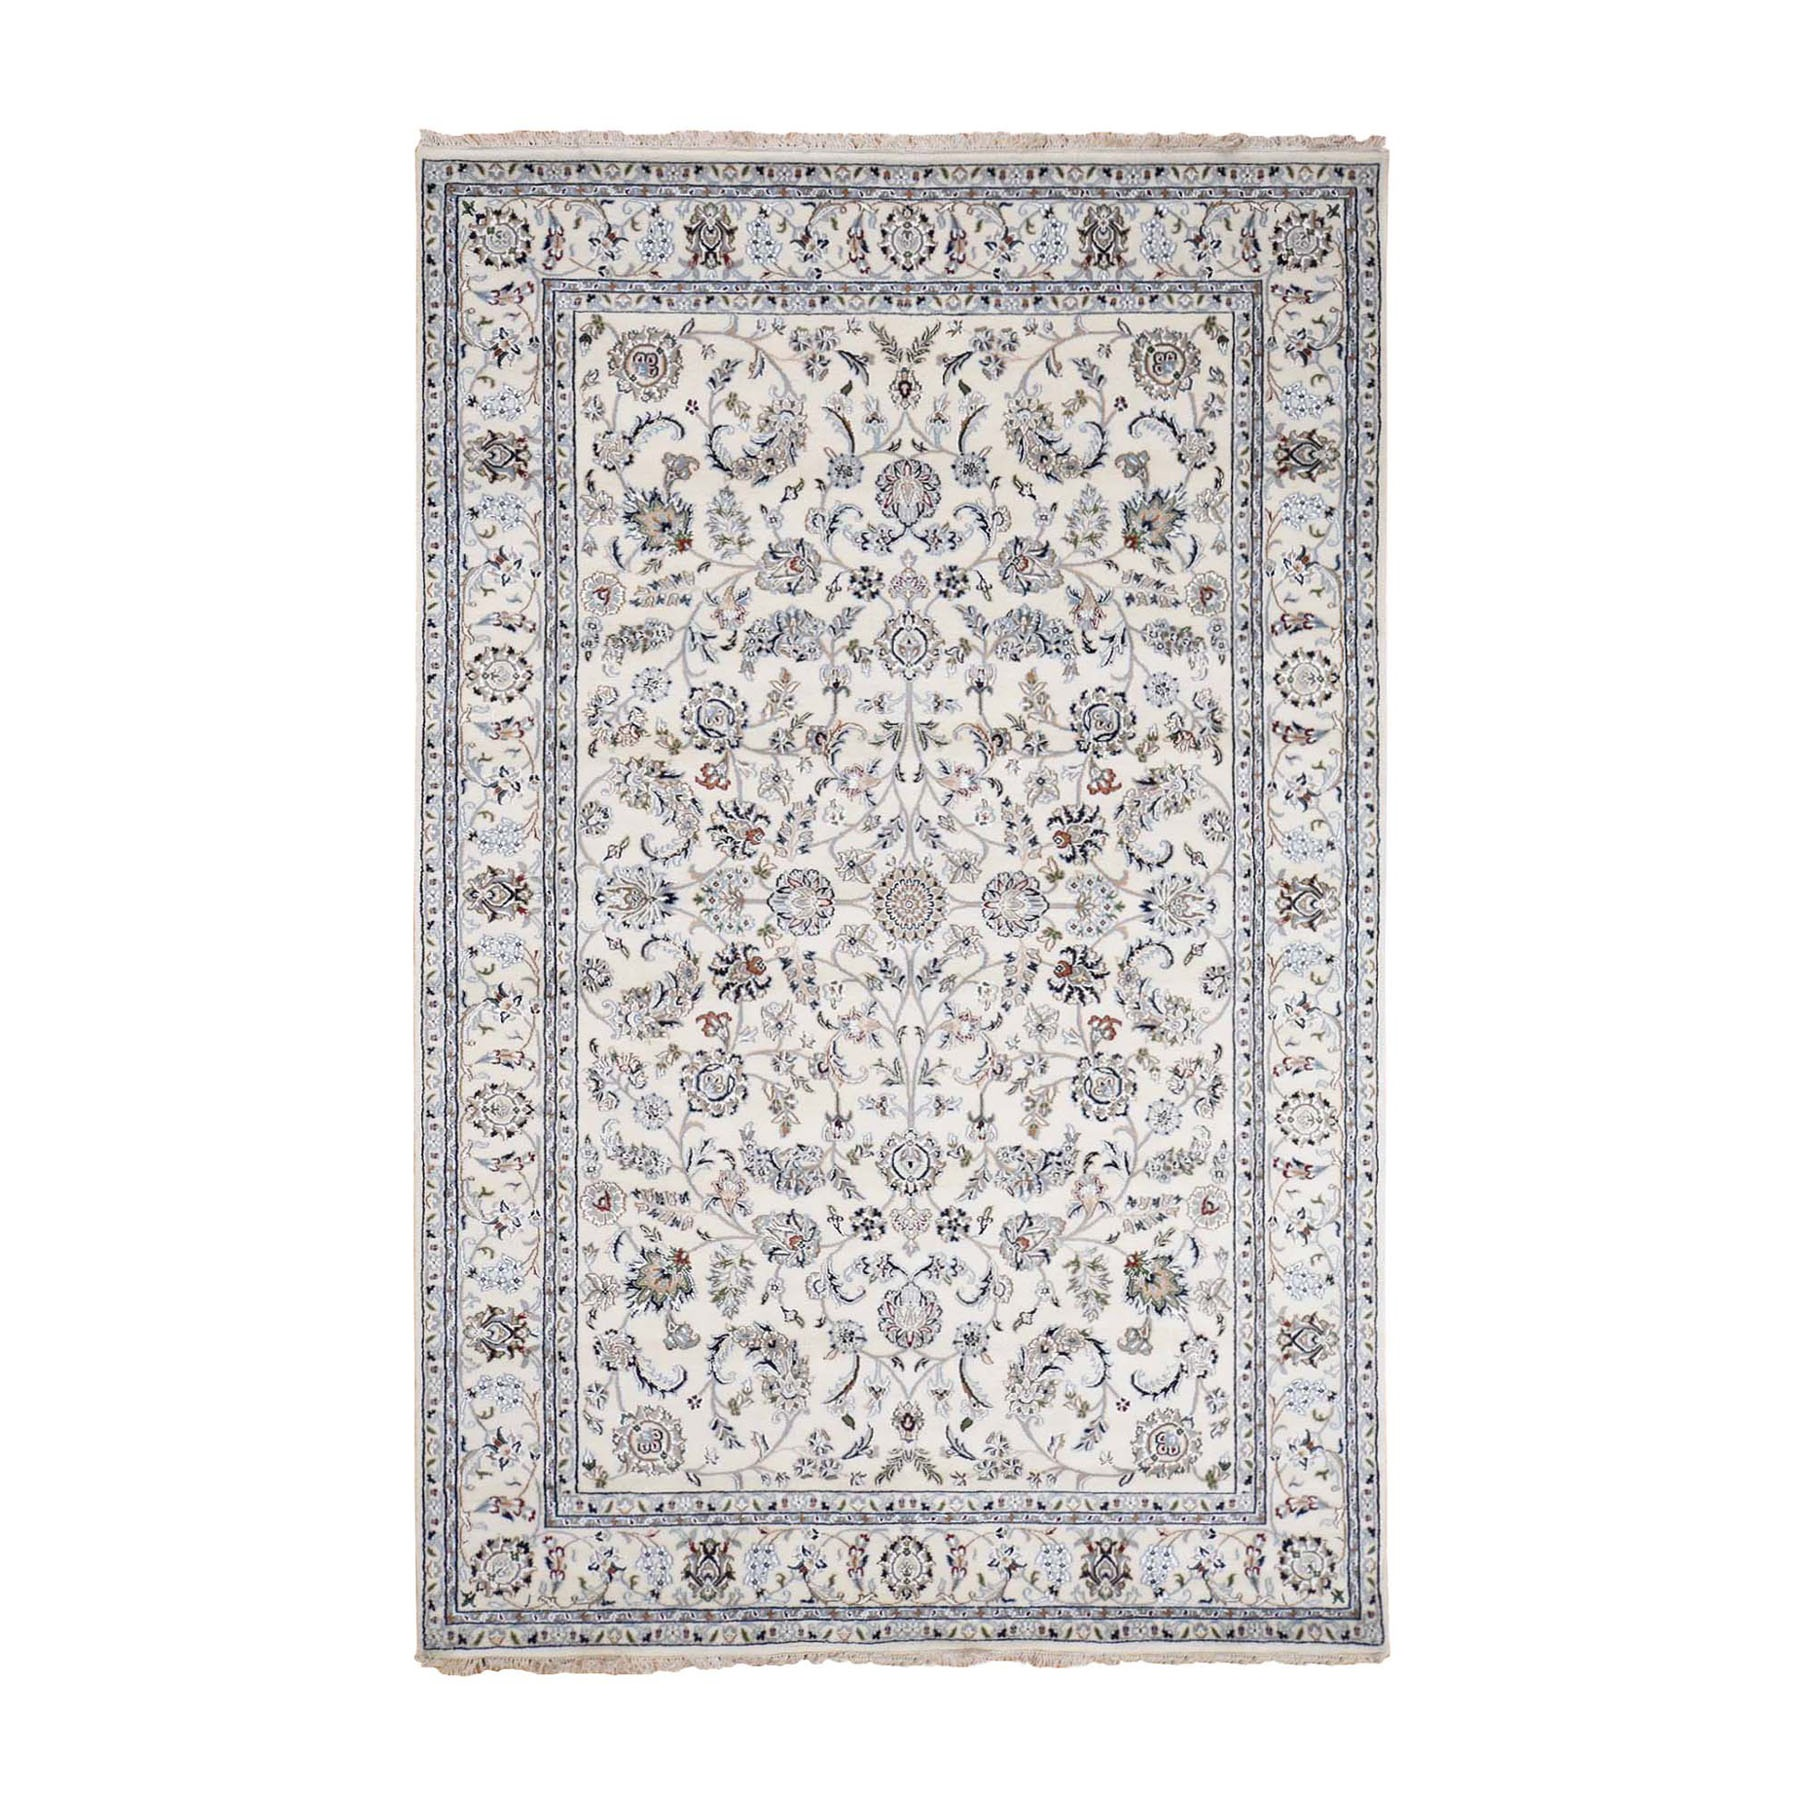 "4'10""x7' Ivory Nain All Over Design Wool And Silk 250 KPSI Hand Woven Oriental Rug"